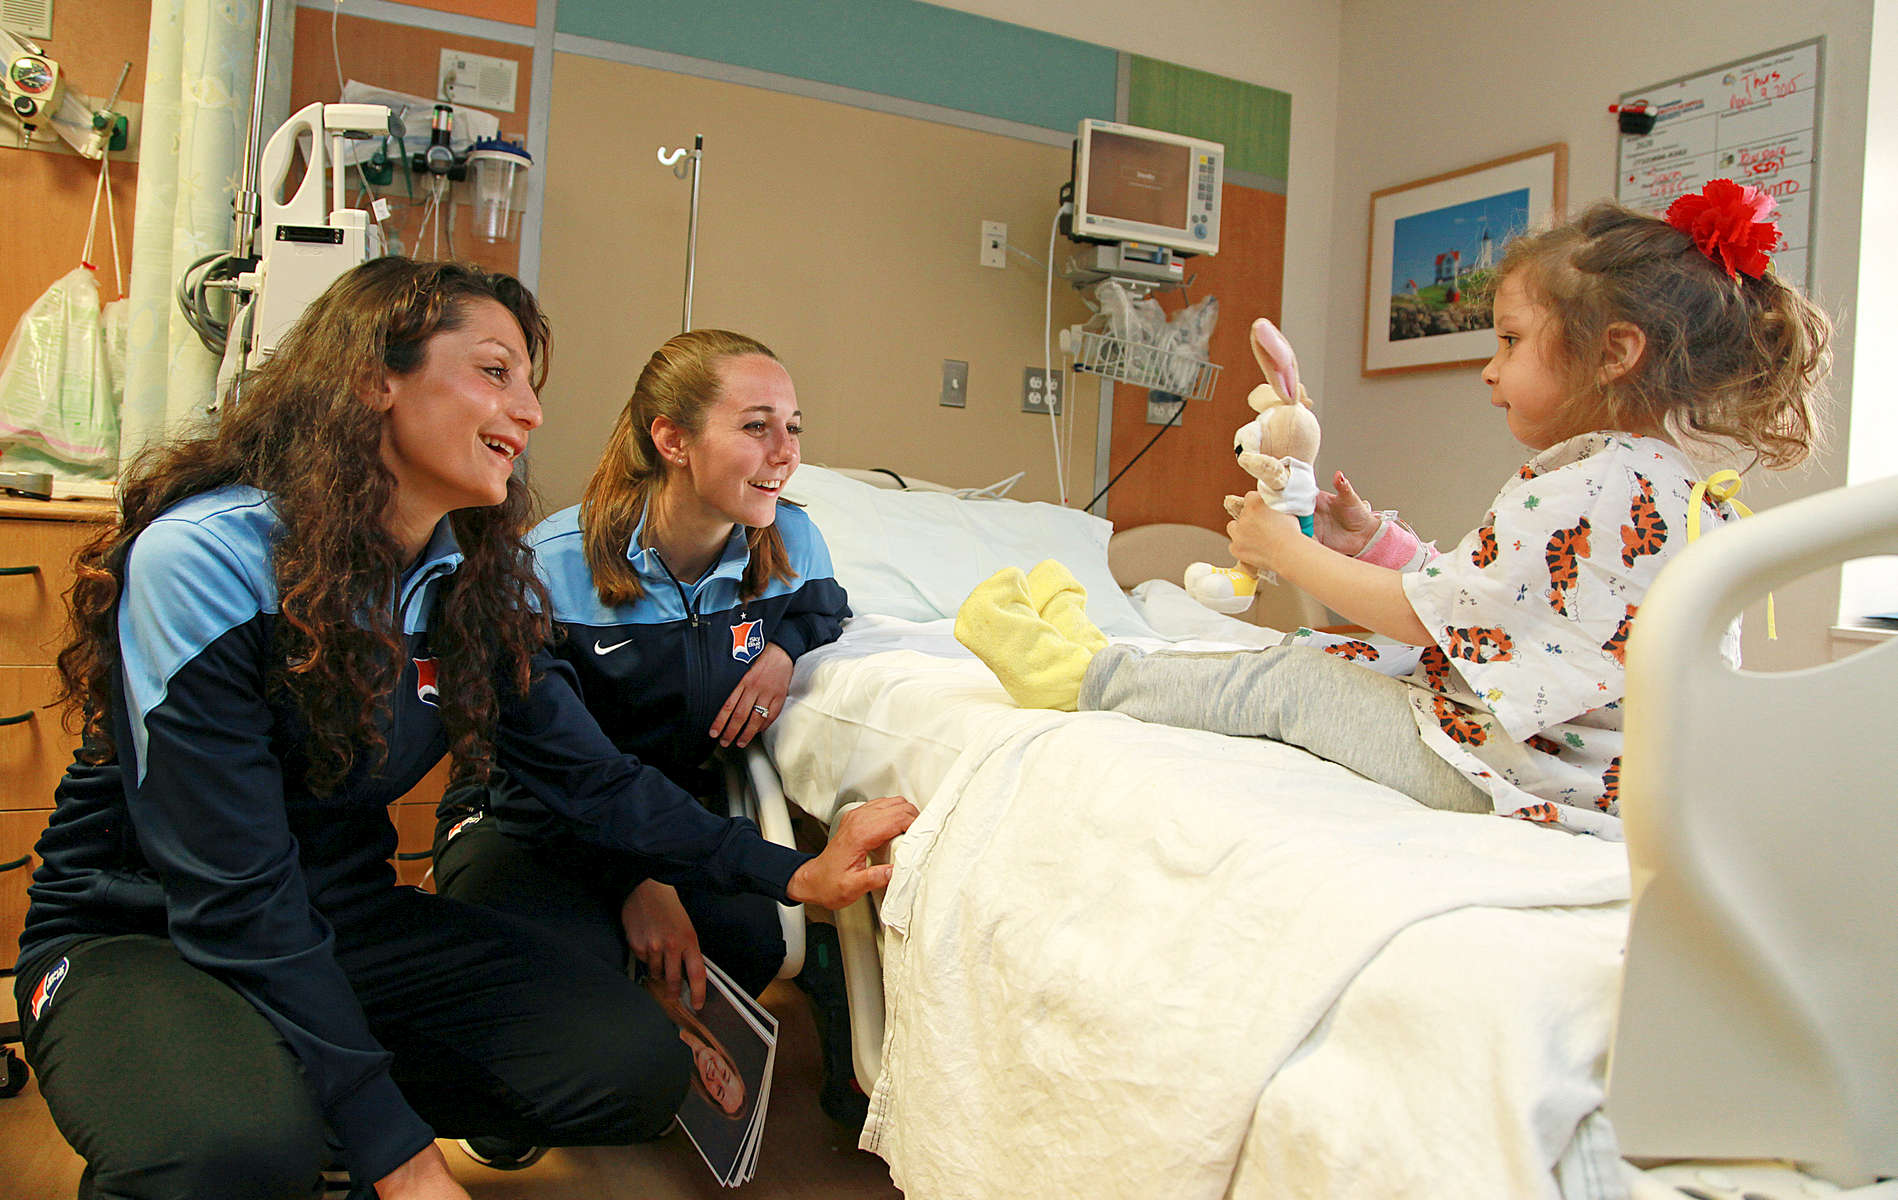 Professional Women's Soccer Player Nadia Nadim (L) , who was born in Kabul, Afghanistan visits 3 year old Valentina, with teammate and roommate Katy Freels,  at Jersey Shore Medical Center in Neptune, NJ.